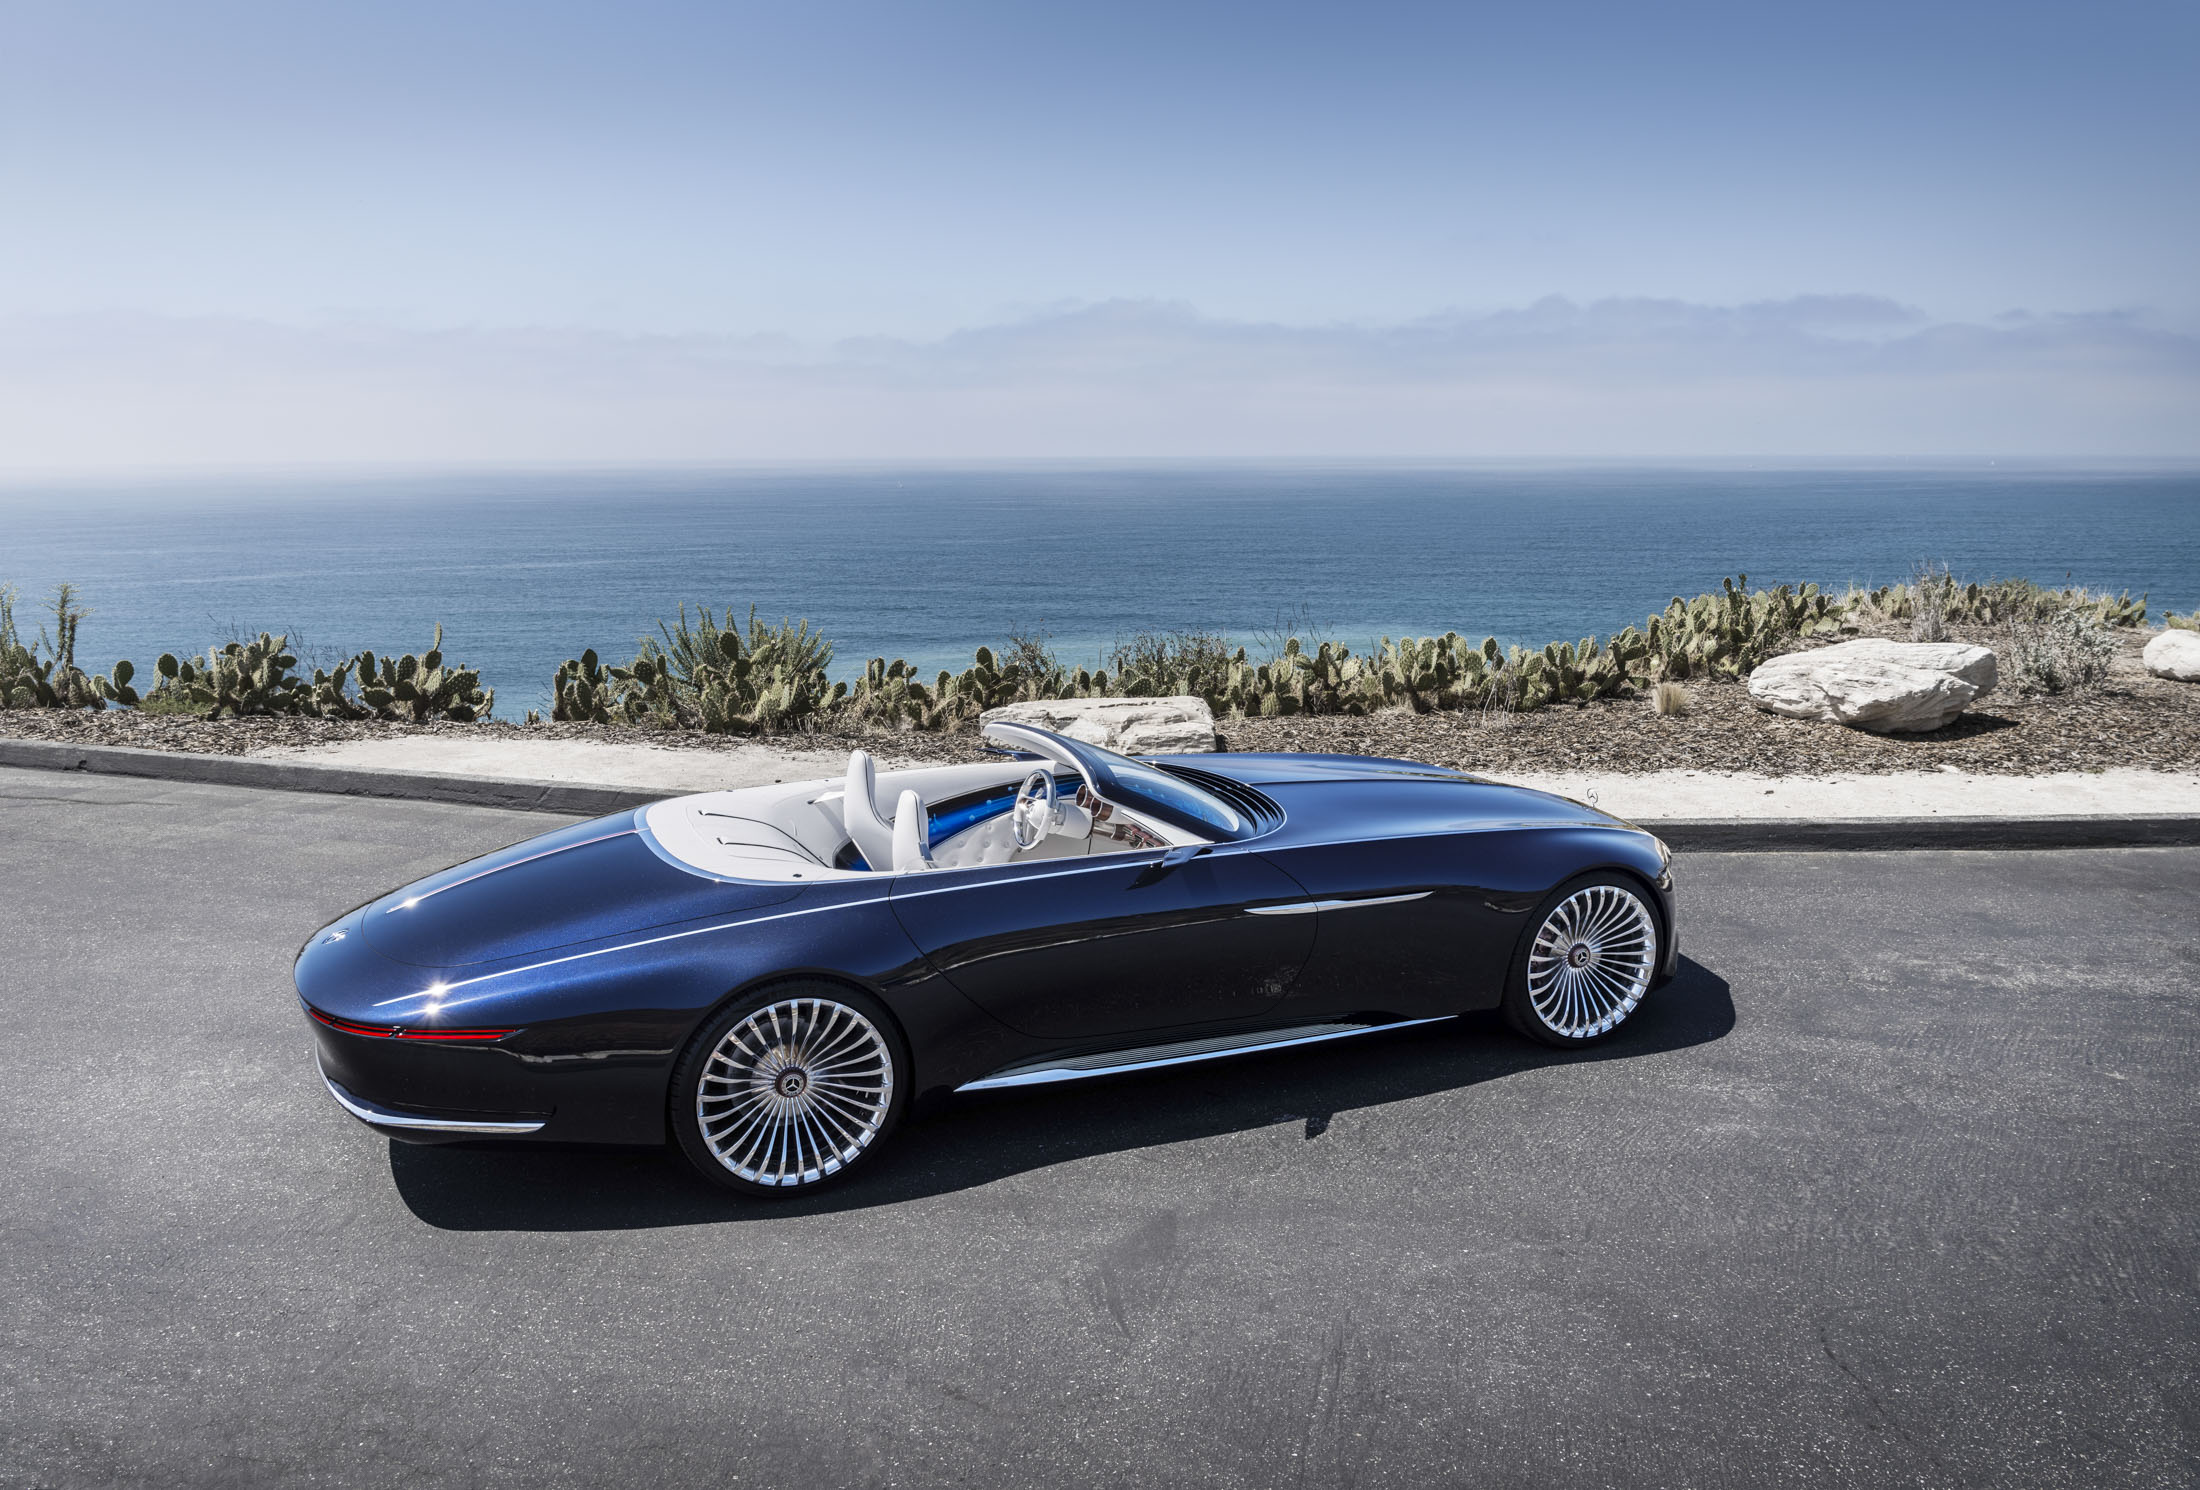 The New Mercedes Maybach Concept Is A 20 Foot Long Convertible Bloomberg